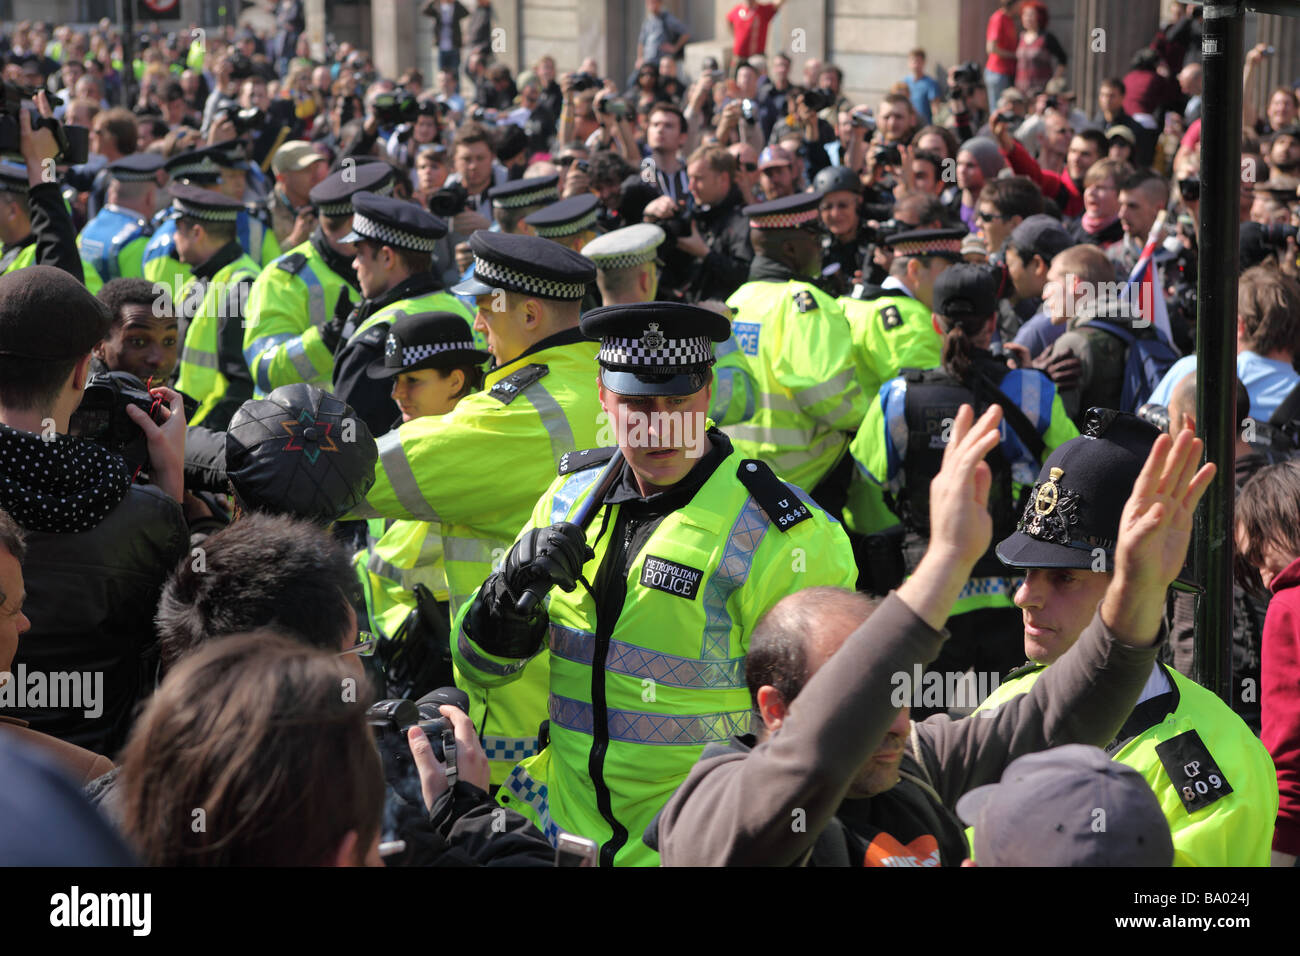 Protesters and police clash outside the Bank of England during the 2009 G20 summit, London, UK. - Stock Image